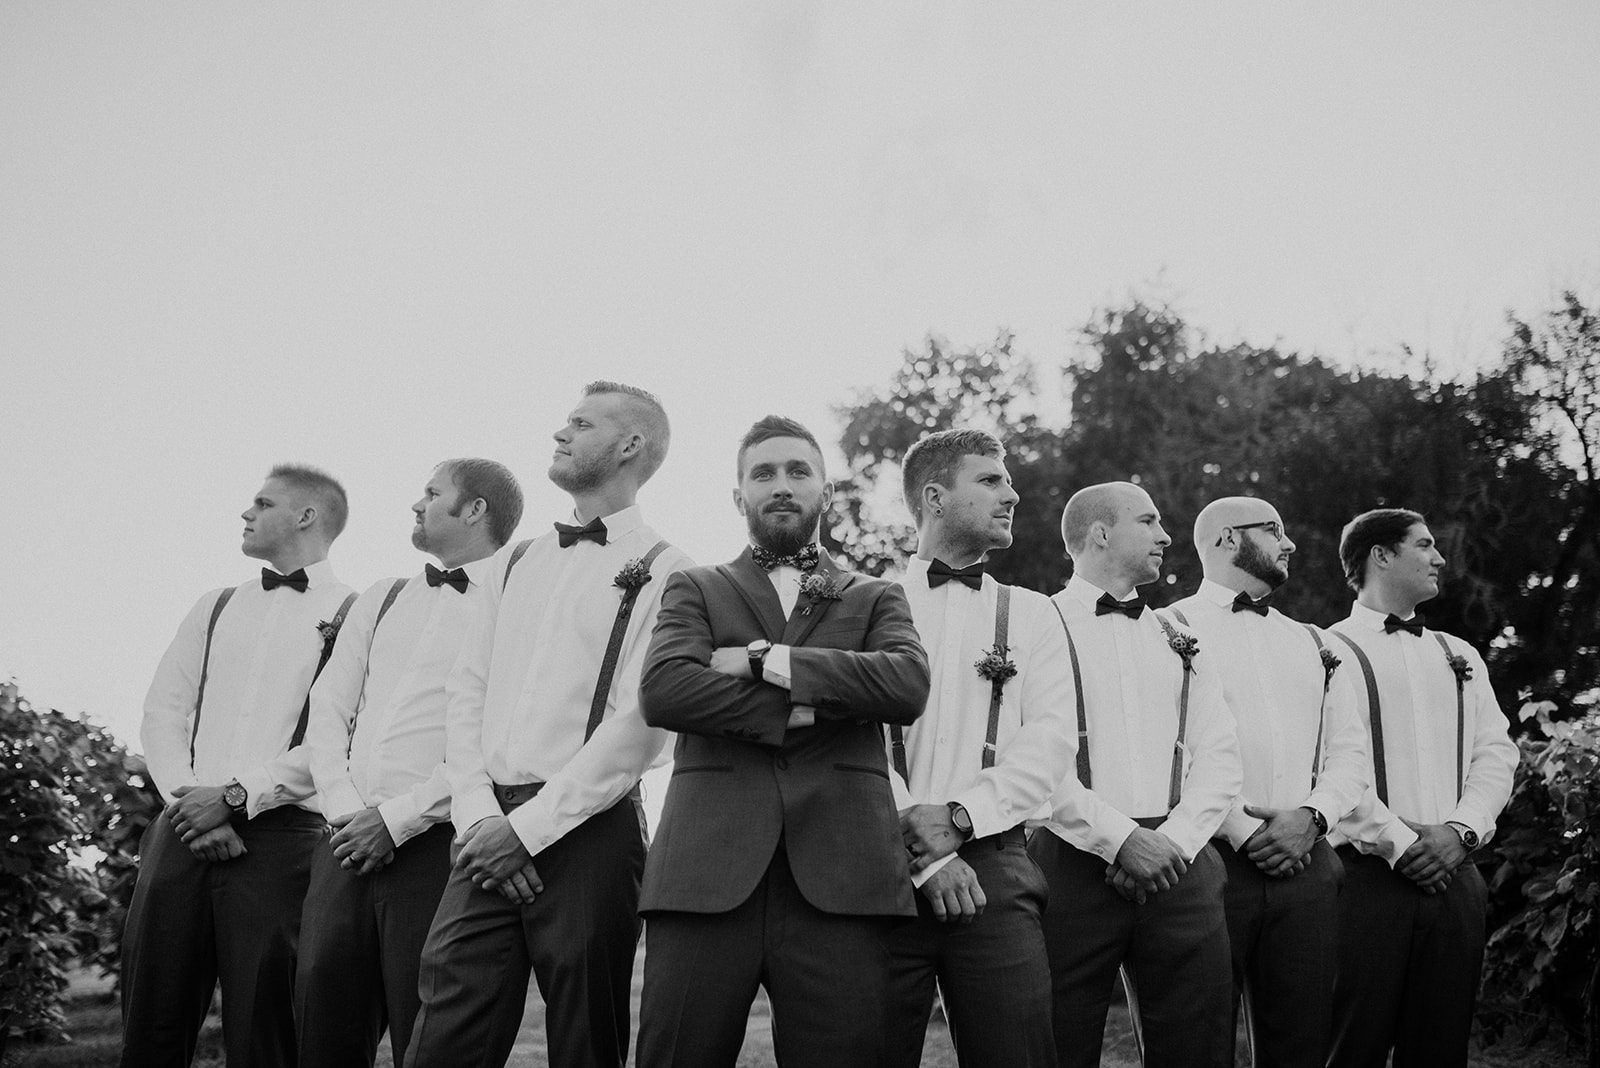 overthevineswisconsinwedding_0871.jpg